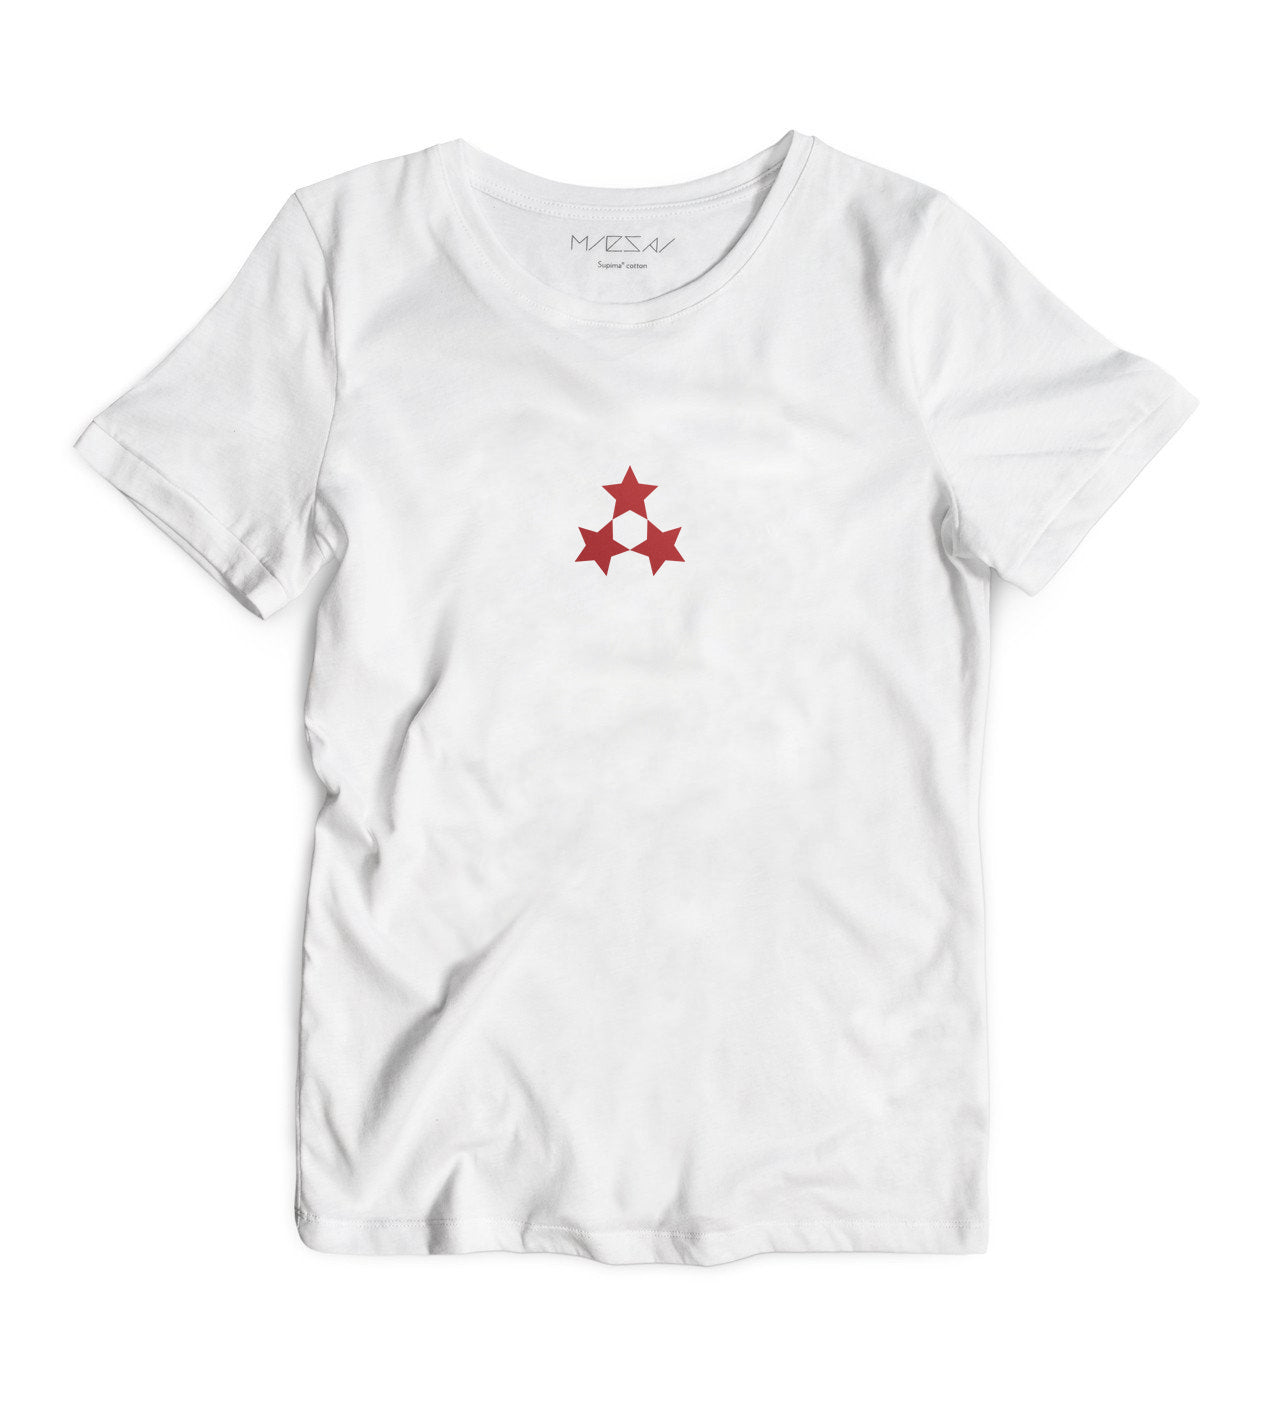 The three unified stars are the national symbol of Latvia. From the Olympic team to the national coat of arms, to every by-passer of the Freedom Monument, it expresses the value of free will.   The 3 Stars T-shirt celebrates freedom in an elegant yet subtle way.